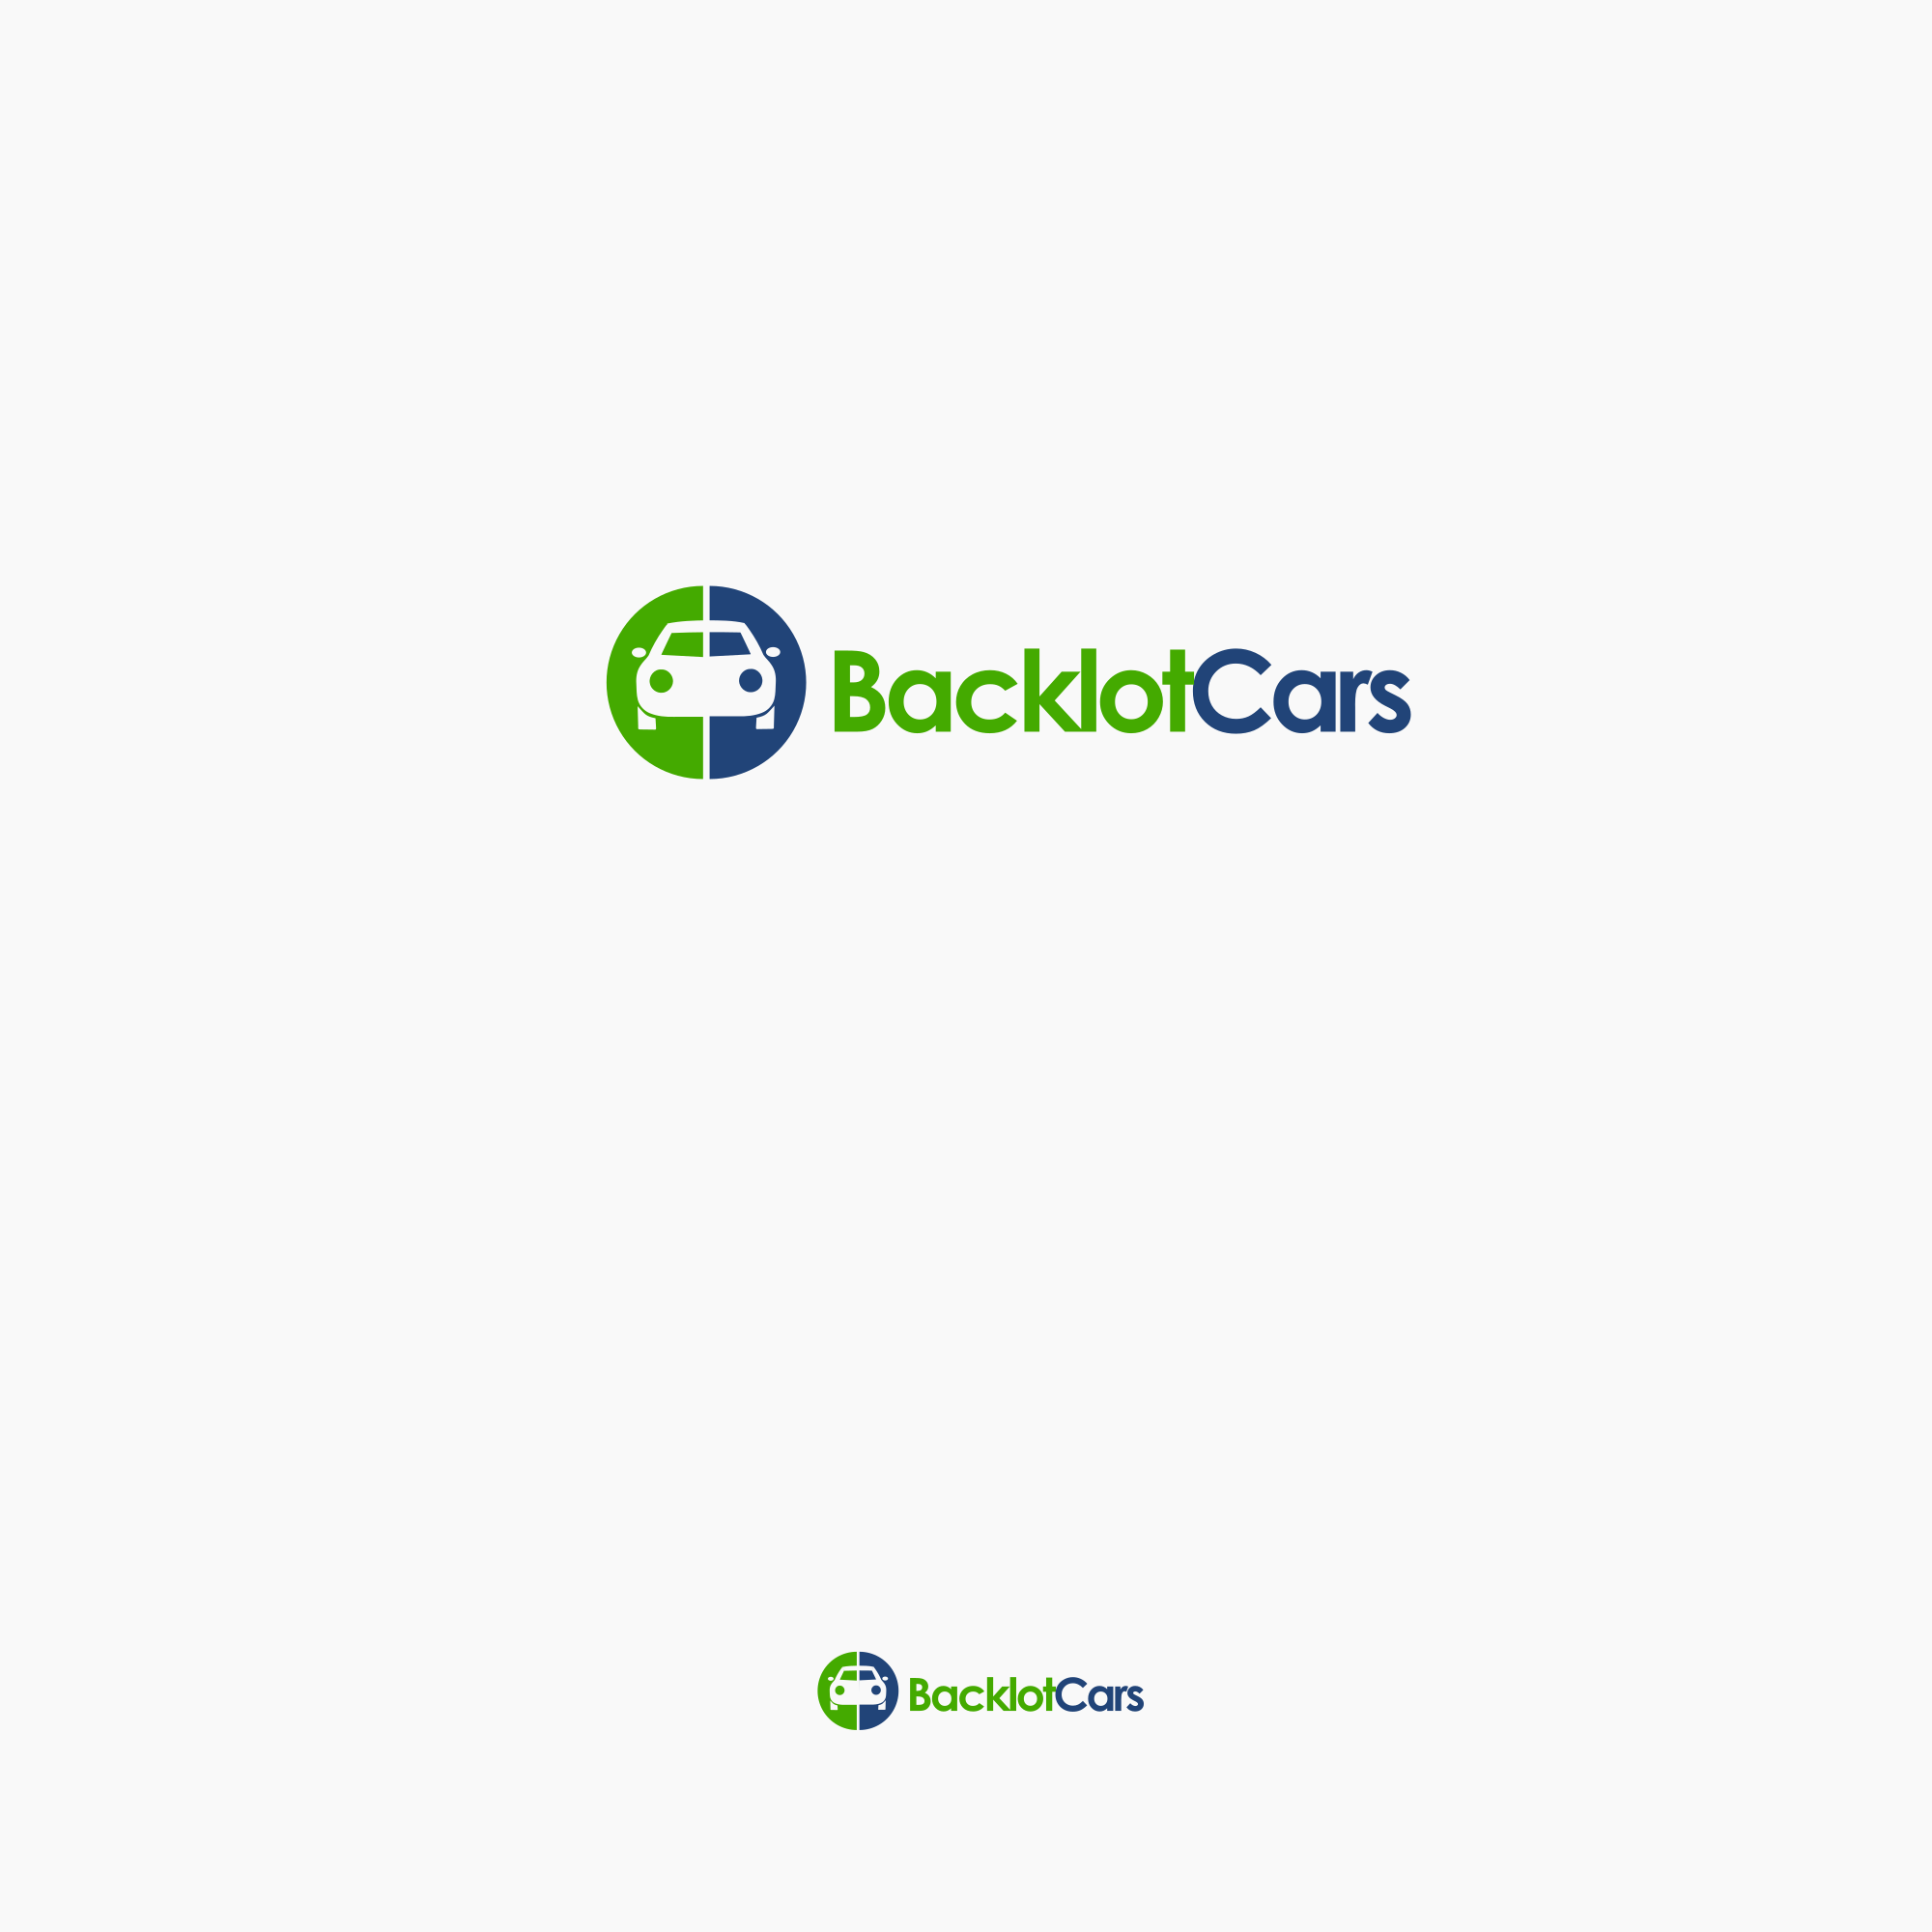 BacklotCars: Building a better tomorrow w/ your logo :)